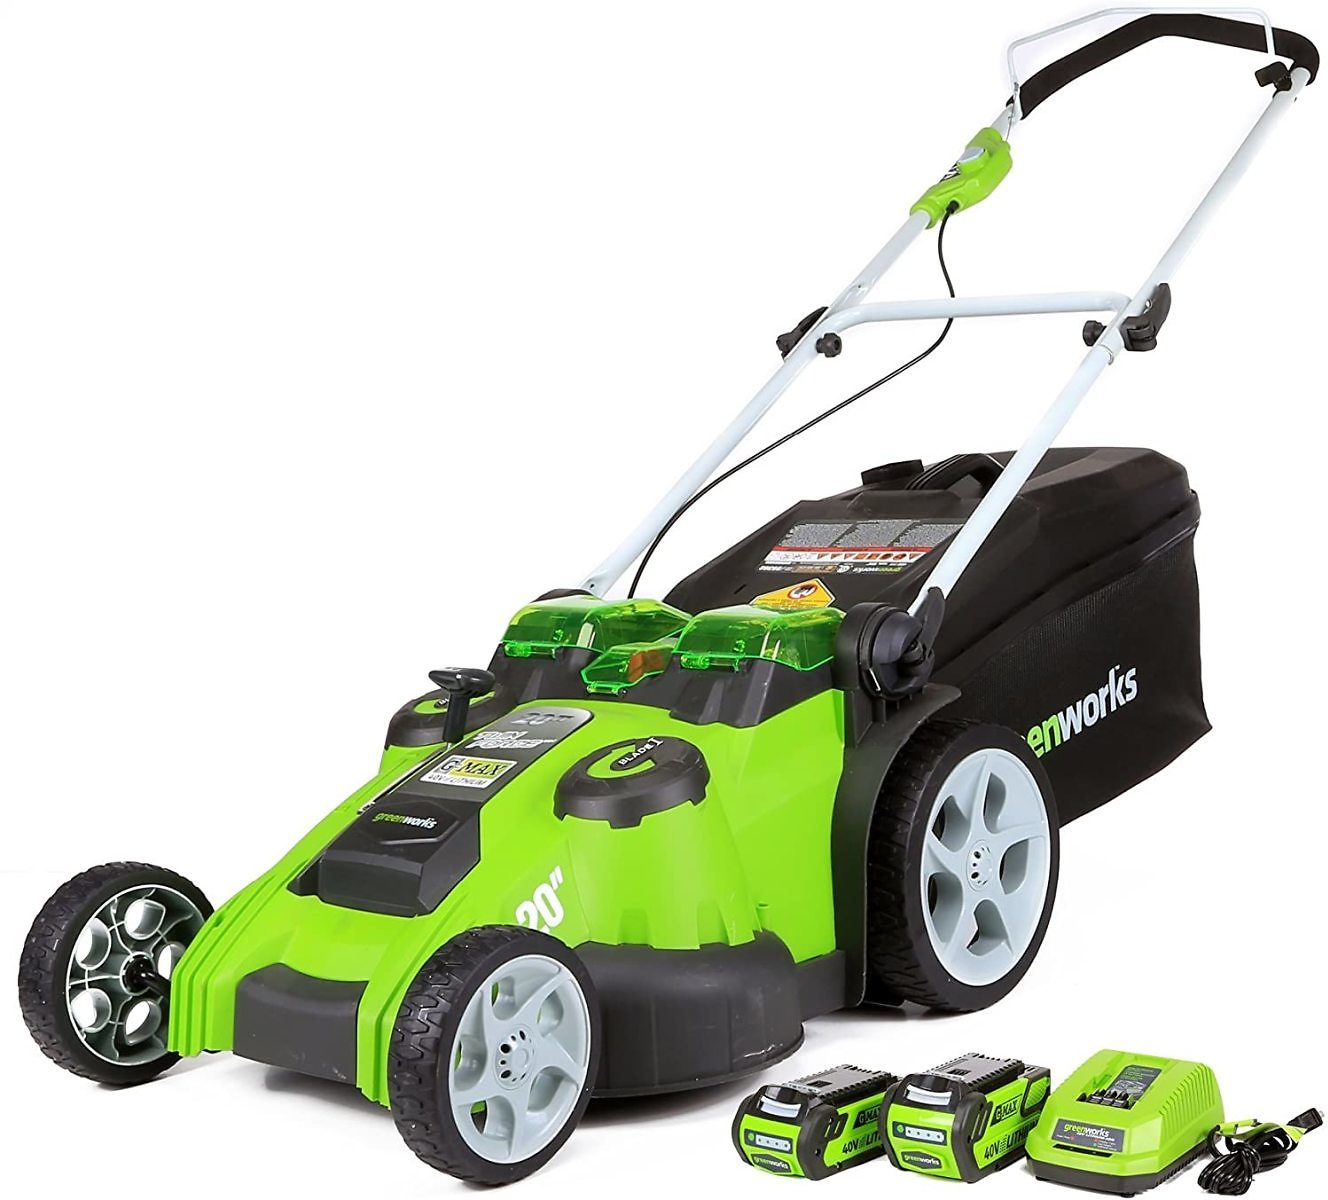 Save 30% On Greenworks Outdoor Power Tools